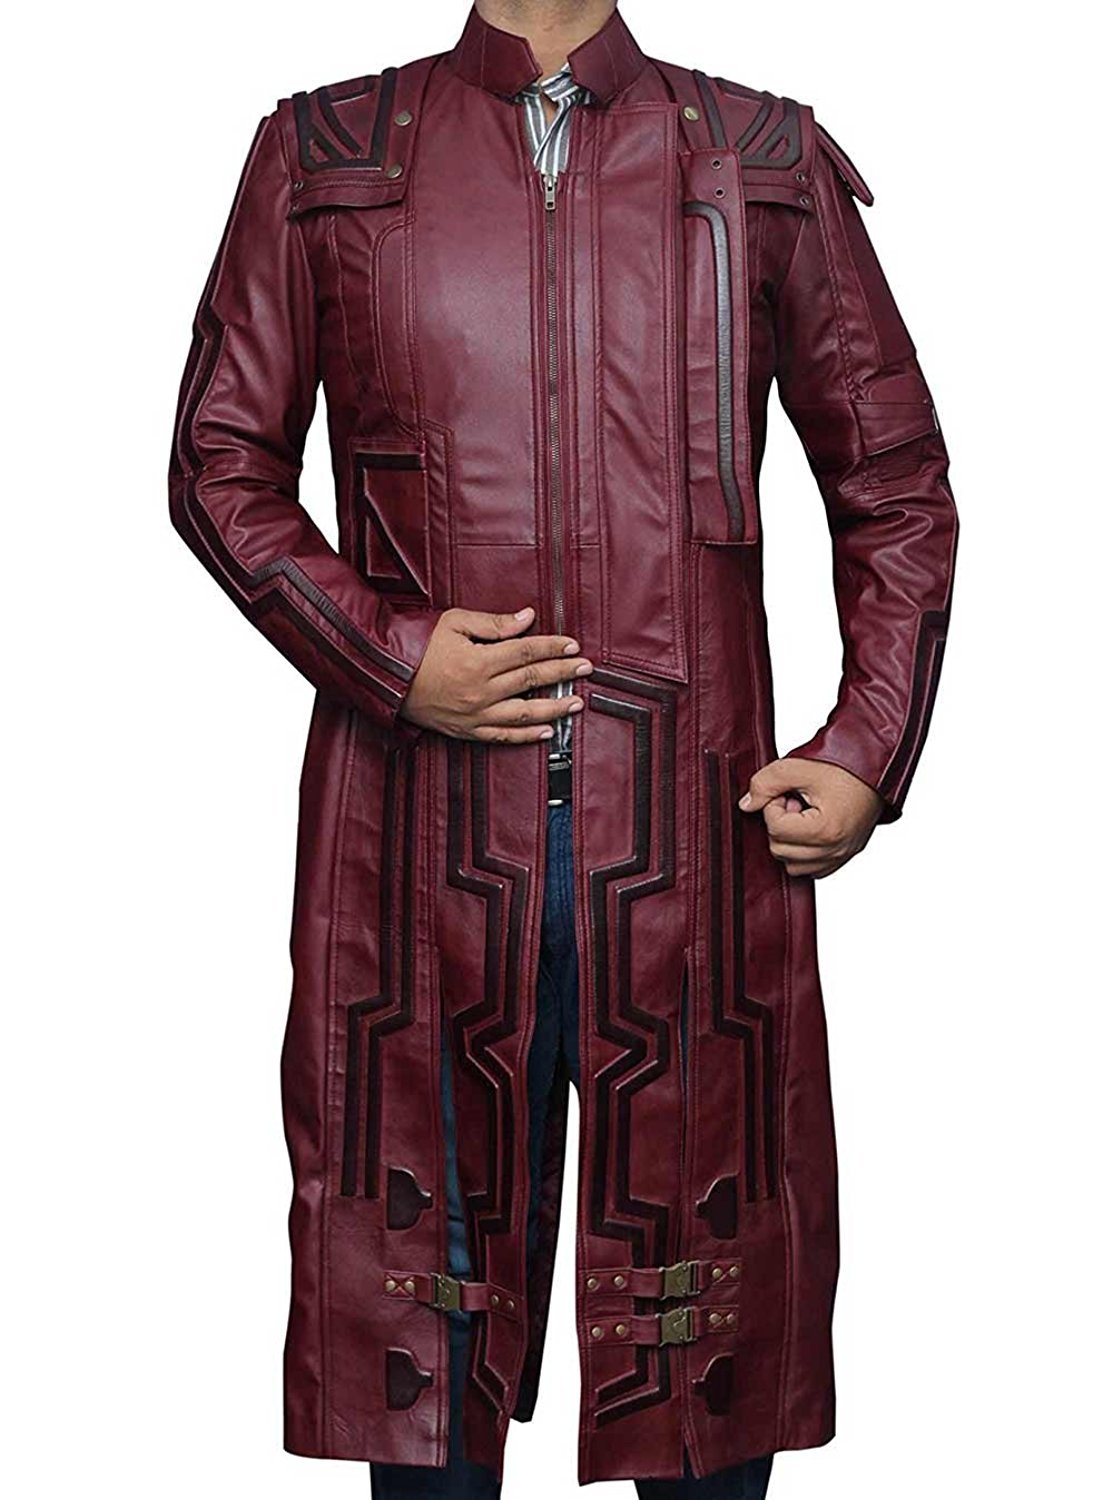 BlingSoul Star Lord Peter Quill Leather Coat Men Costume - Trench Coat Dress For Boys (L)